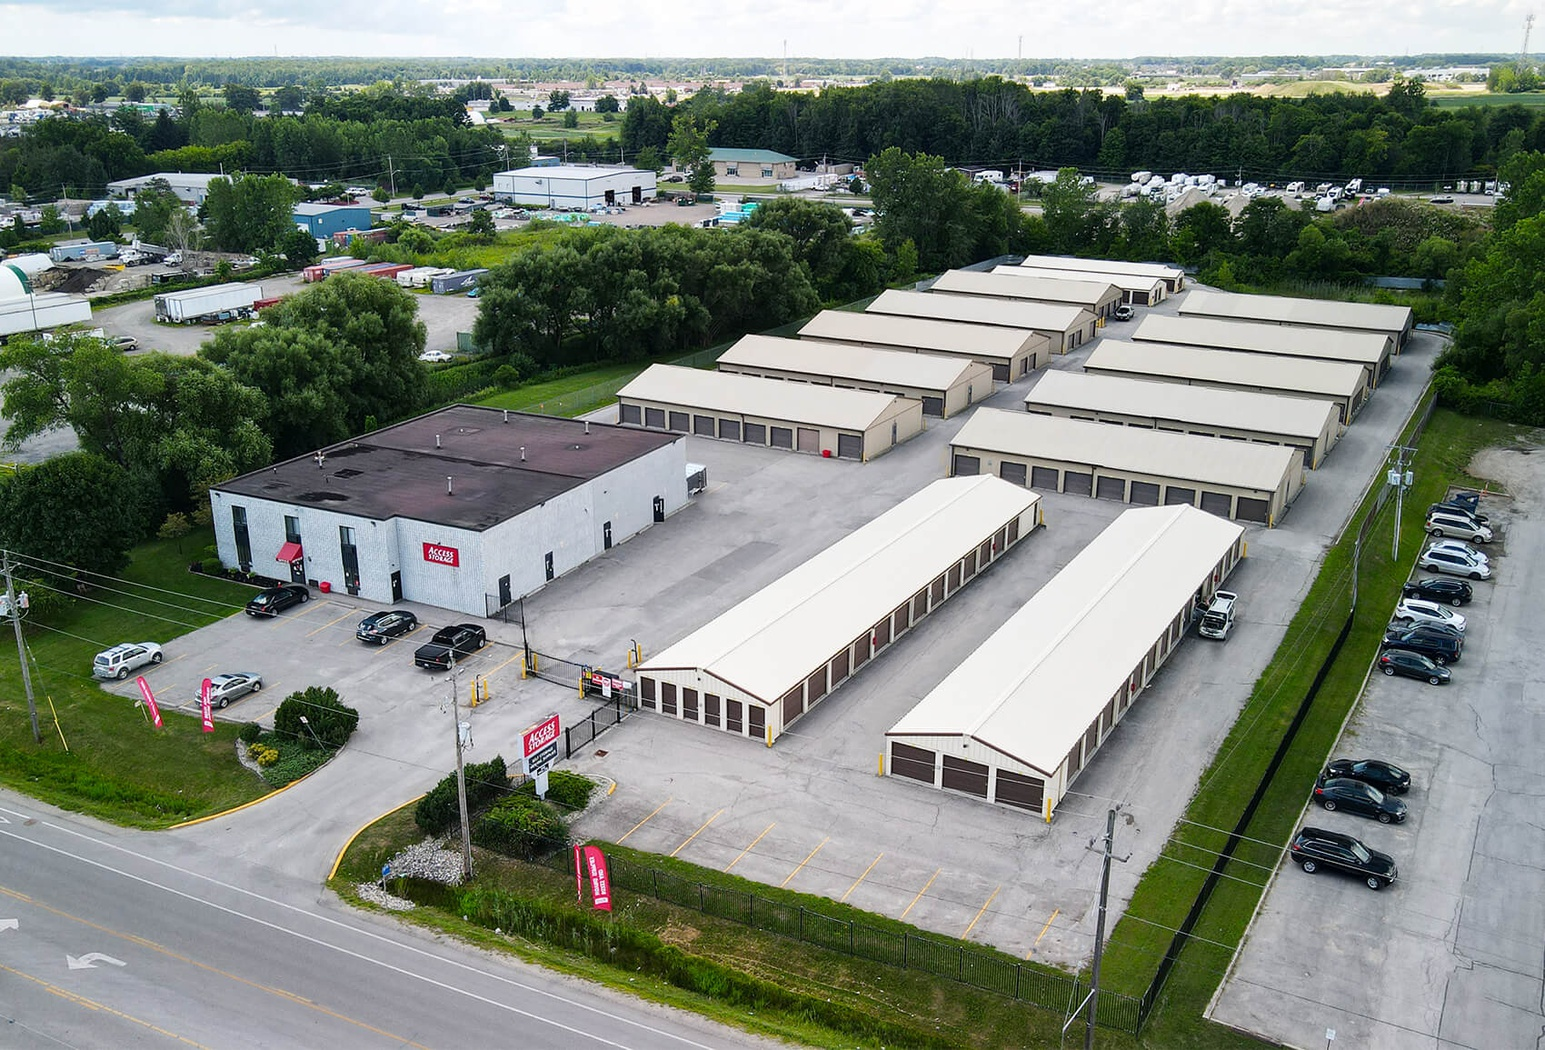 Rent London White Oaks storage units at 3435 White Oak Road. We offer a wide-range of affordable self storage units and your first 4 weeks are free!